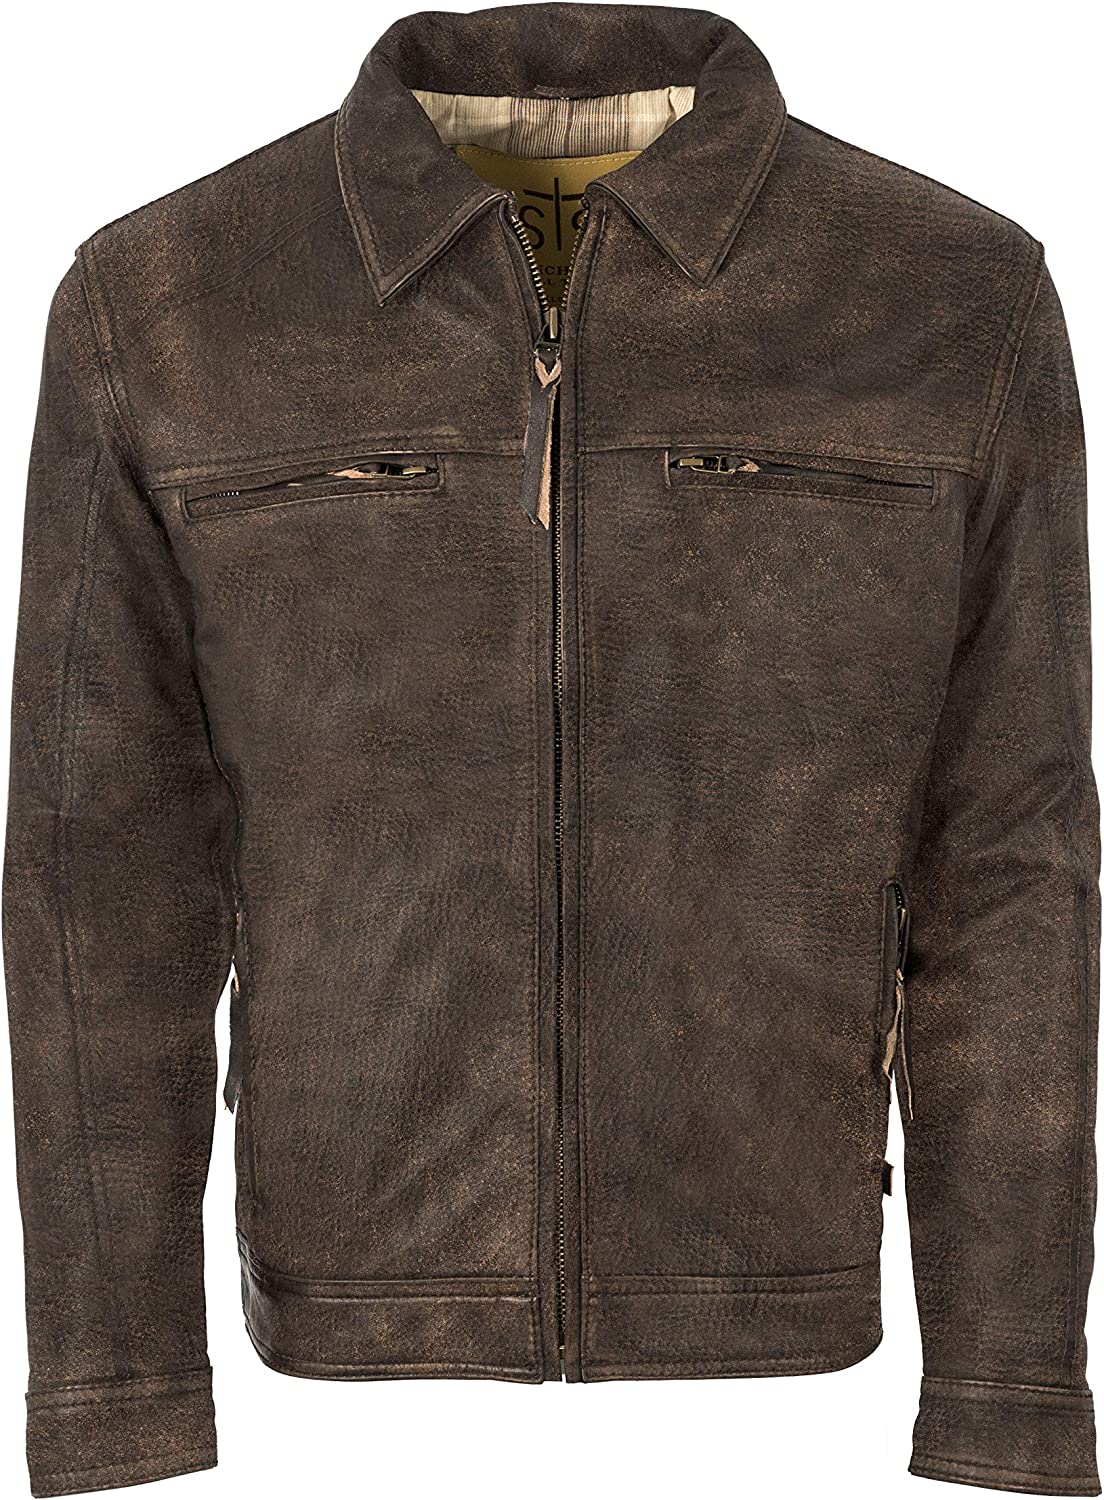 STS Ranchwear Men's Contemporary Fit Rustic Leather Jacket (